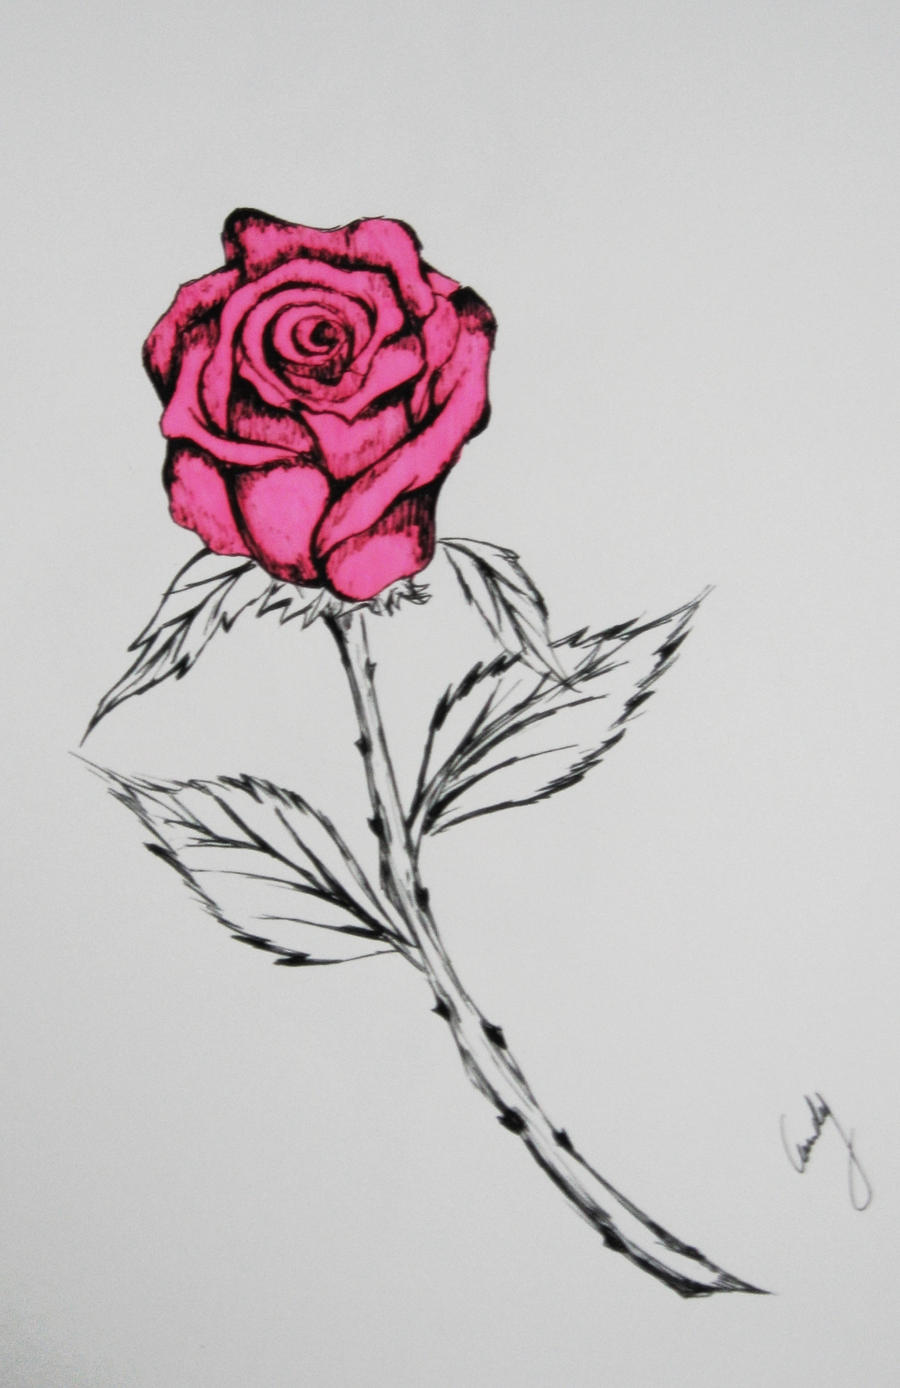 rose drawing by andy023 on DeviantArt